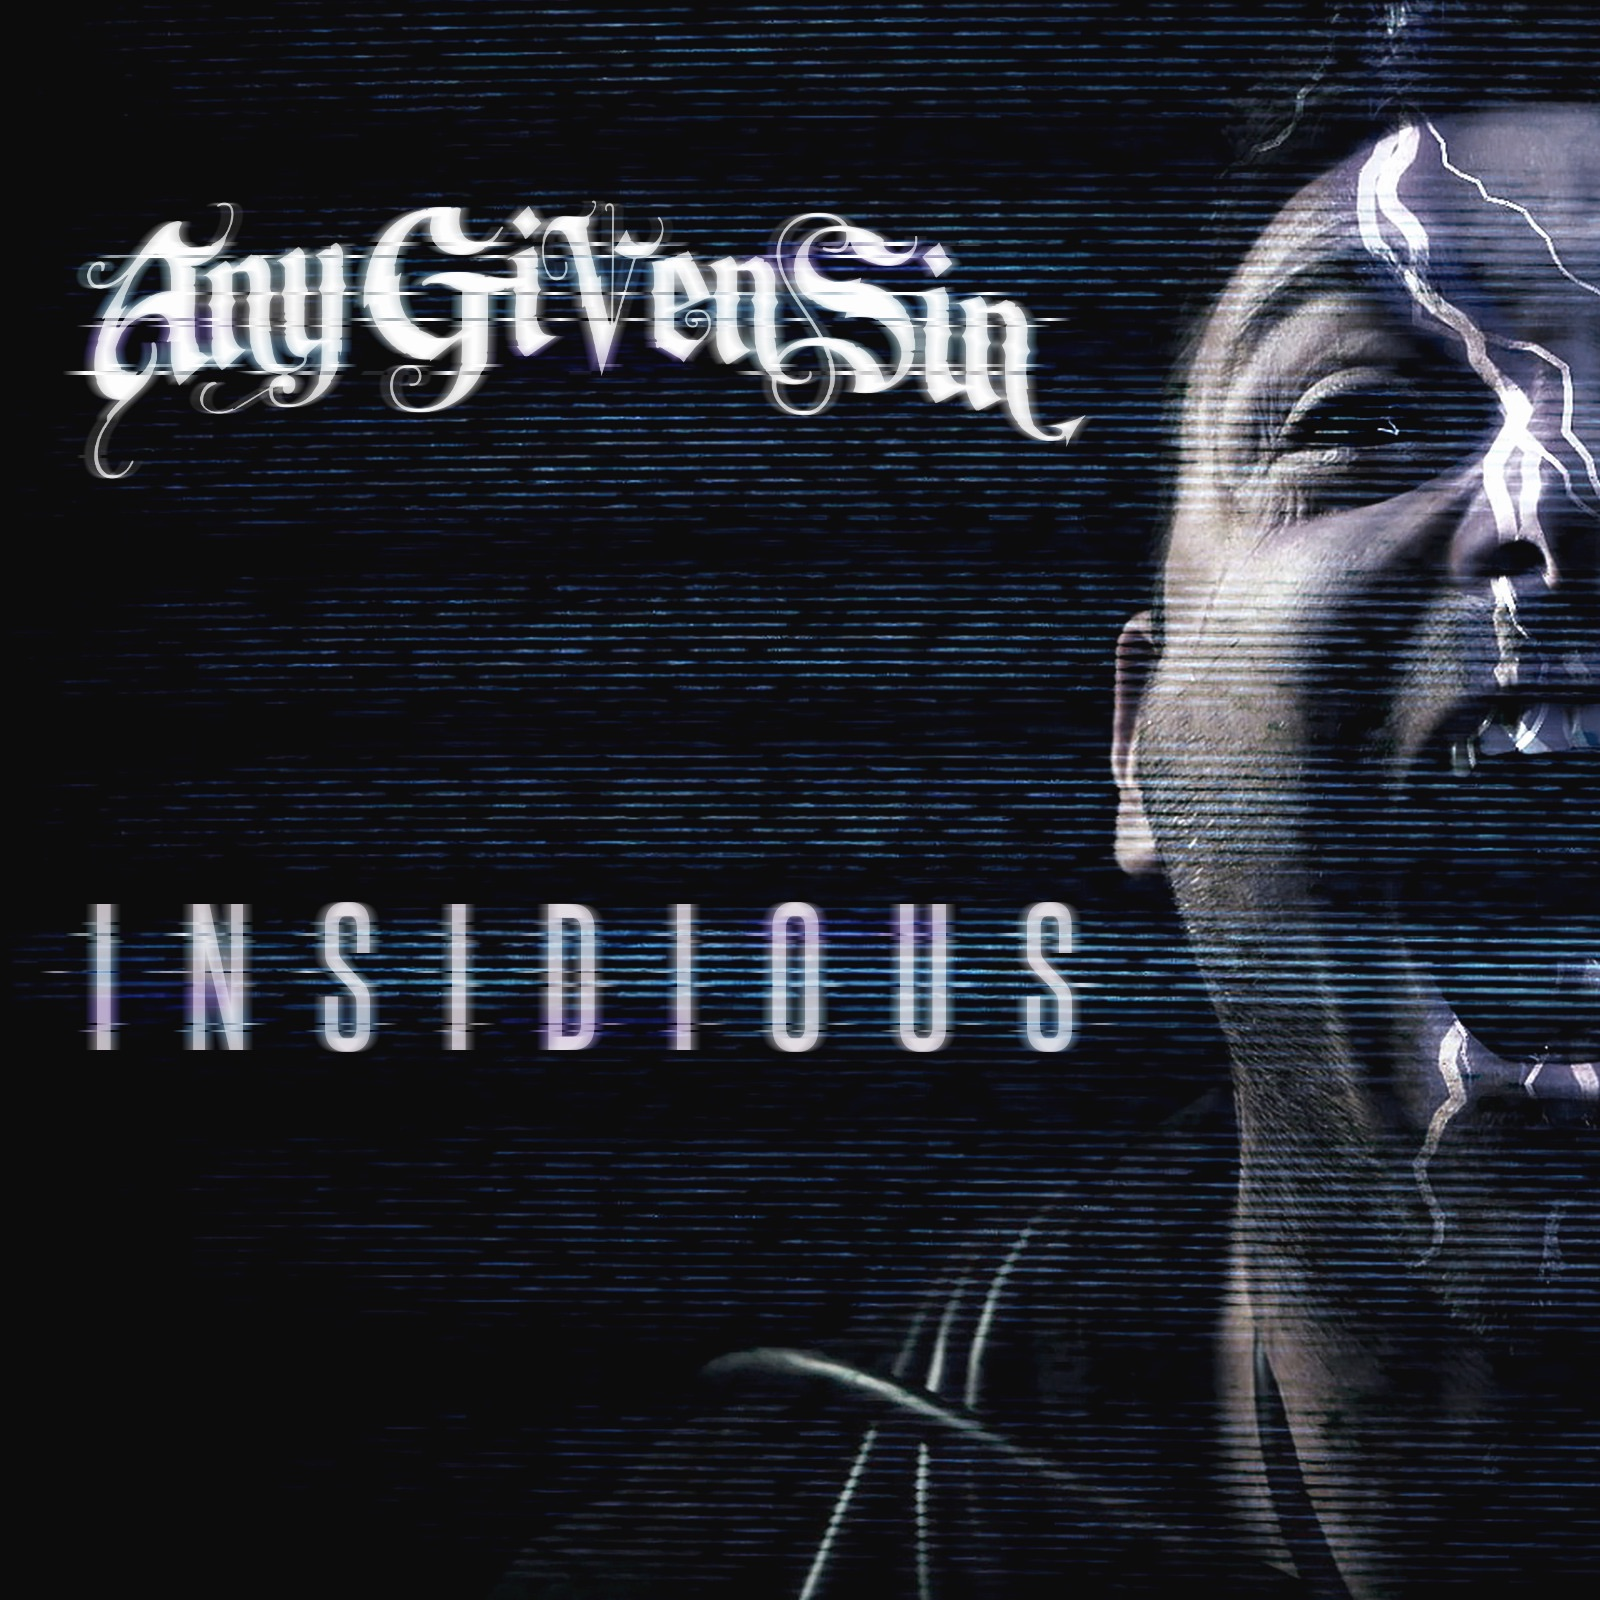 Art for Insidious by Any Given Sin